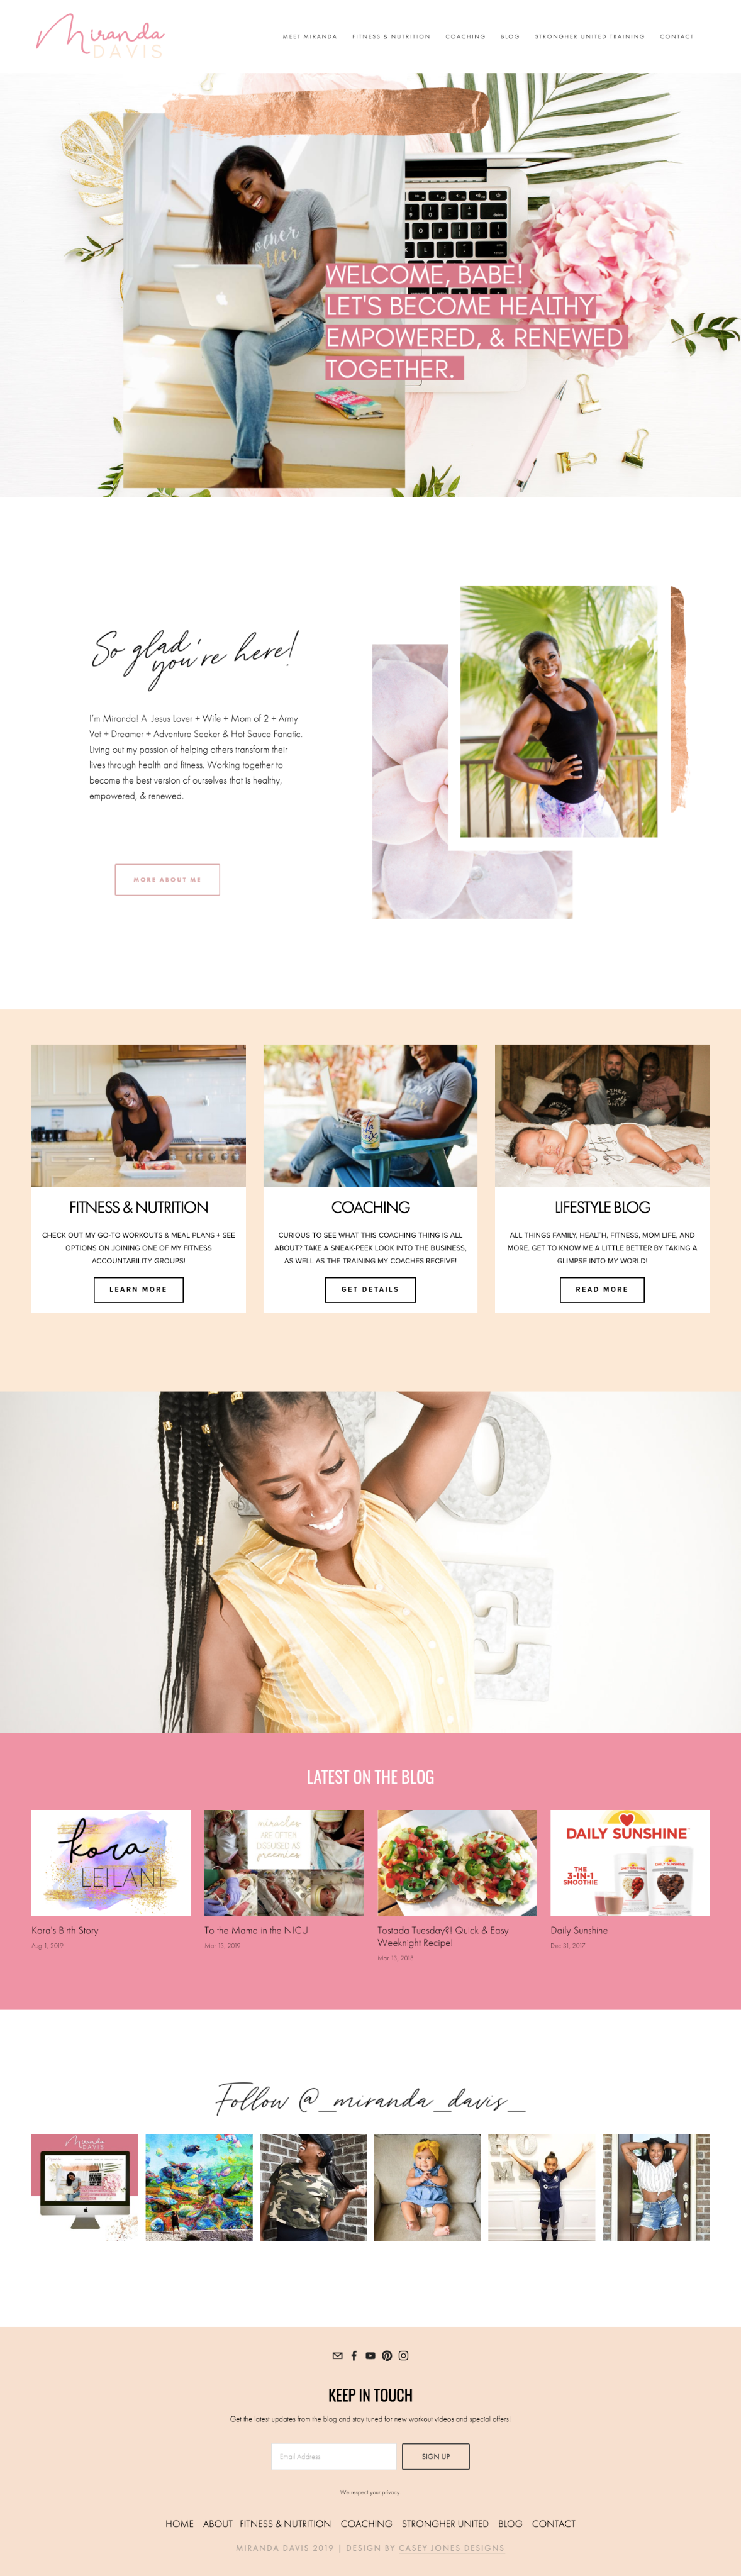 squarespace website designer clean feminine template.png